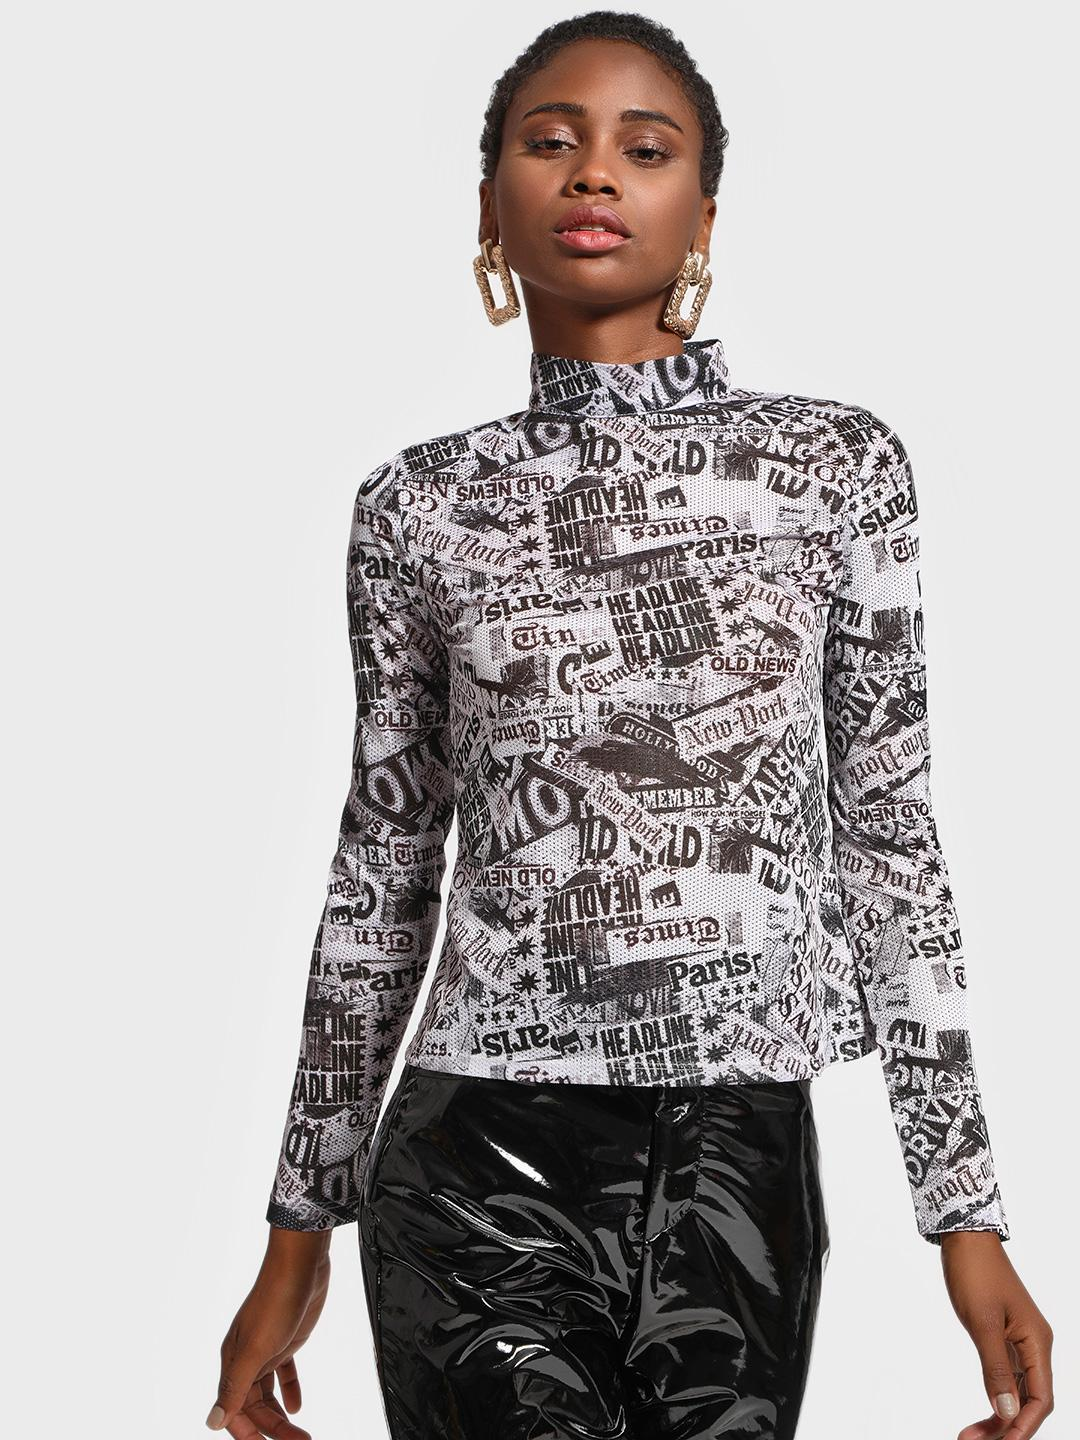 KOOVS Black/White Mesh Newspaper Print Top 1